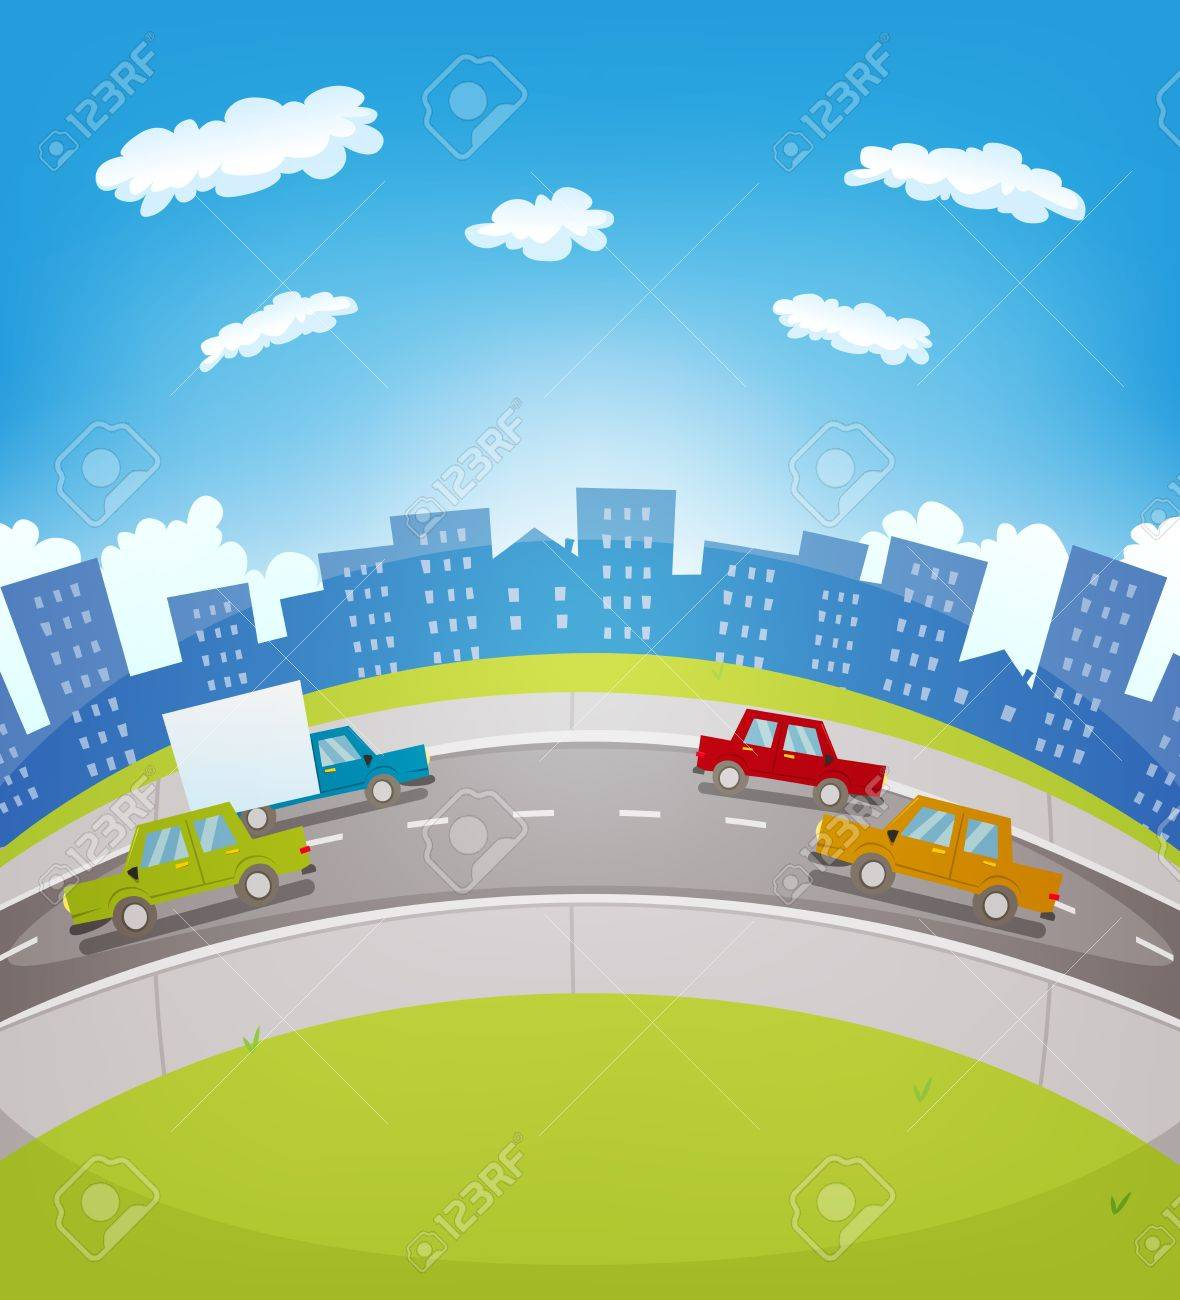 Illustration of a cartoon urban highway traffic in the city with cars and trucks driving along the road Stock Vector - 16957191